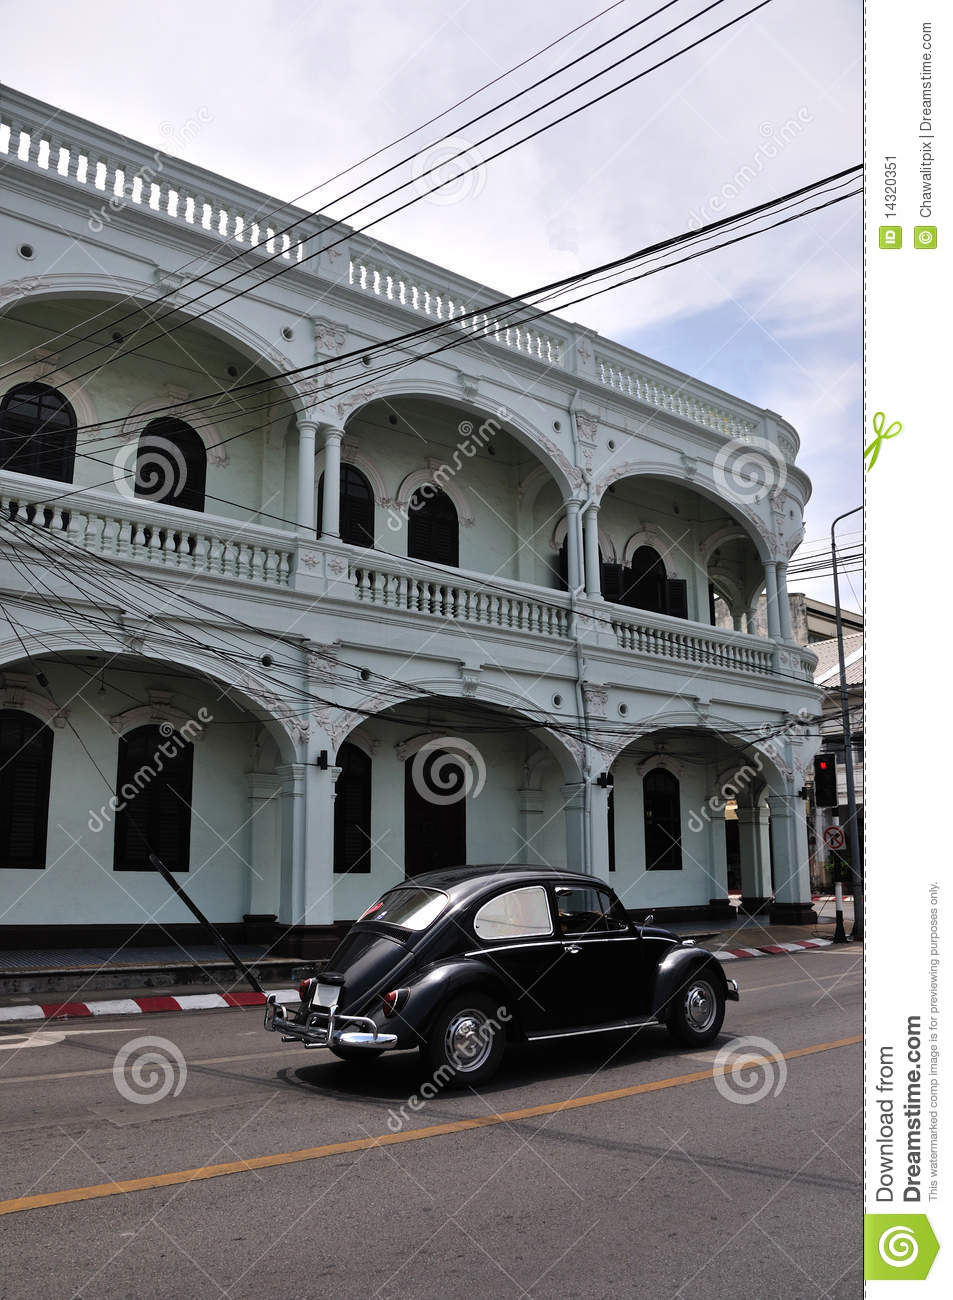 Classic Car And Sino-Portugese Building Stock Image - Image: 14320351